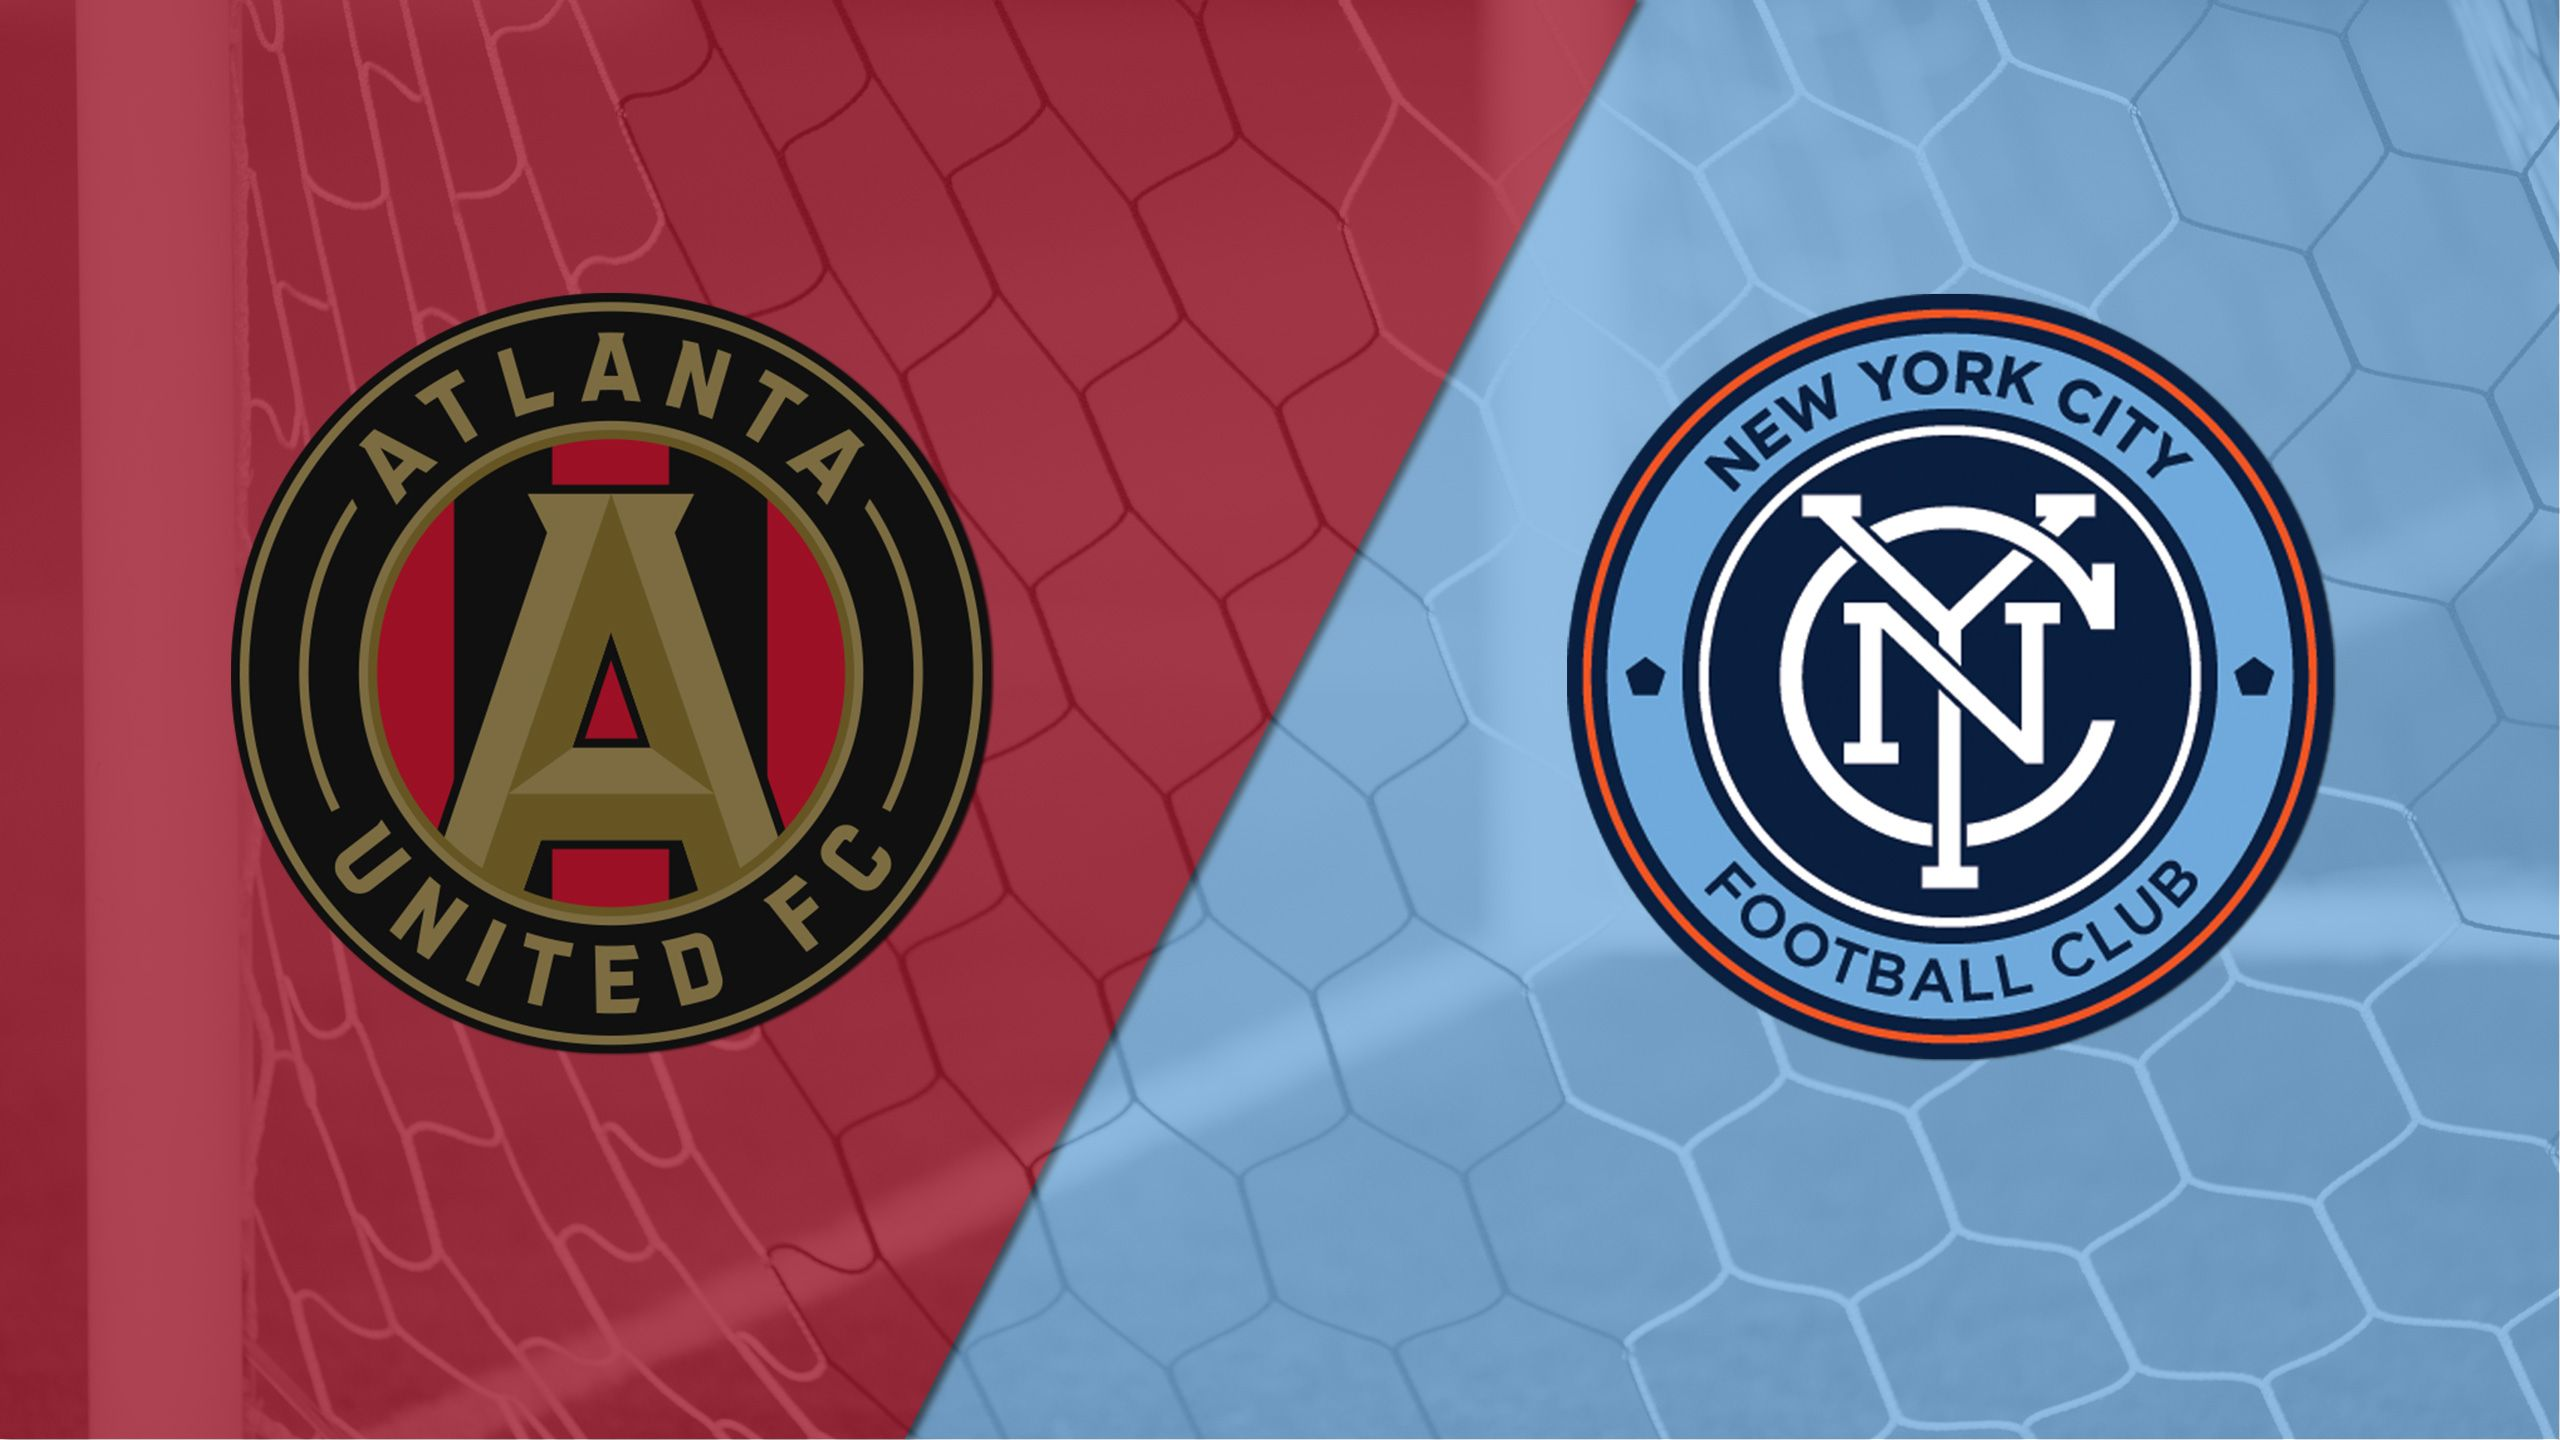 Atlanta United FC vs. New York City FC